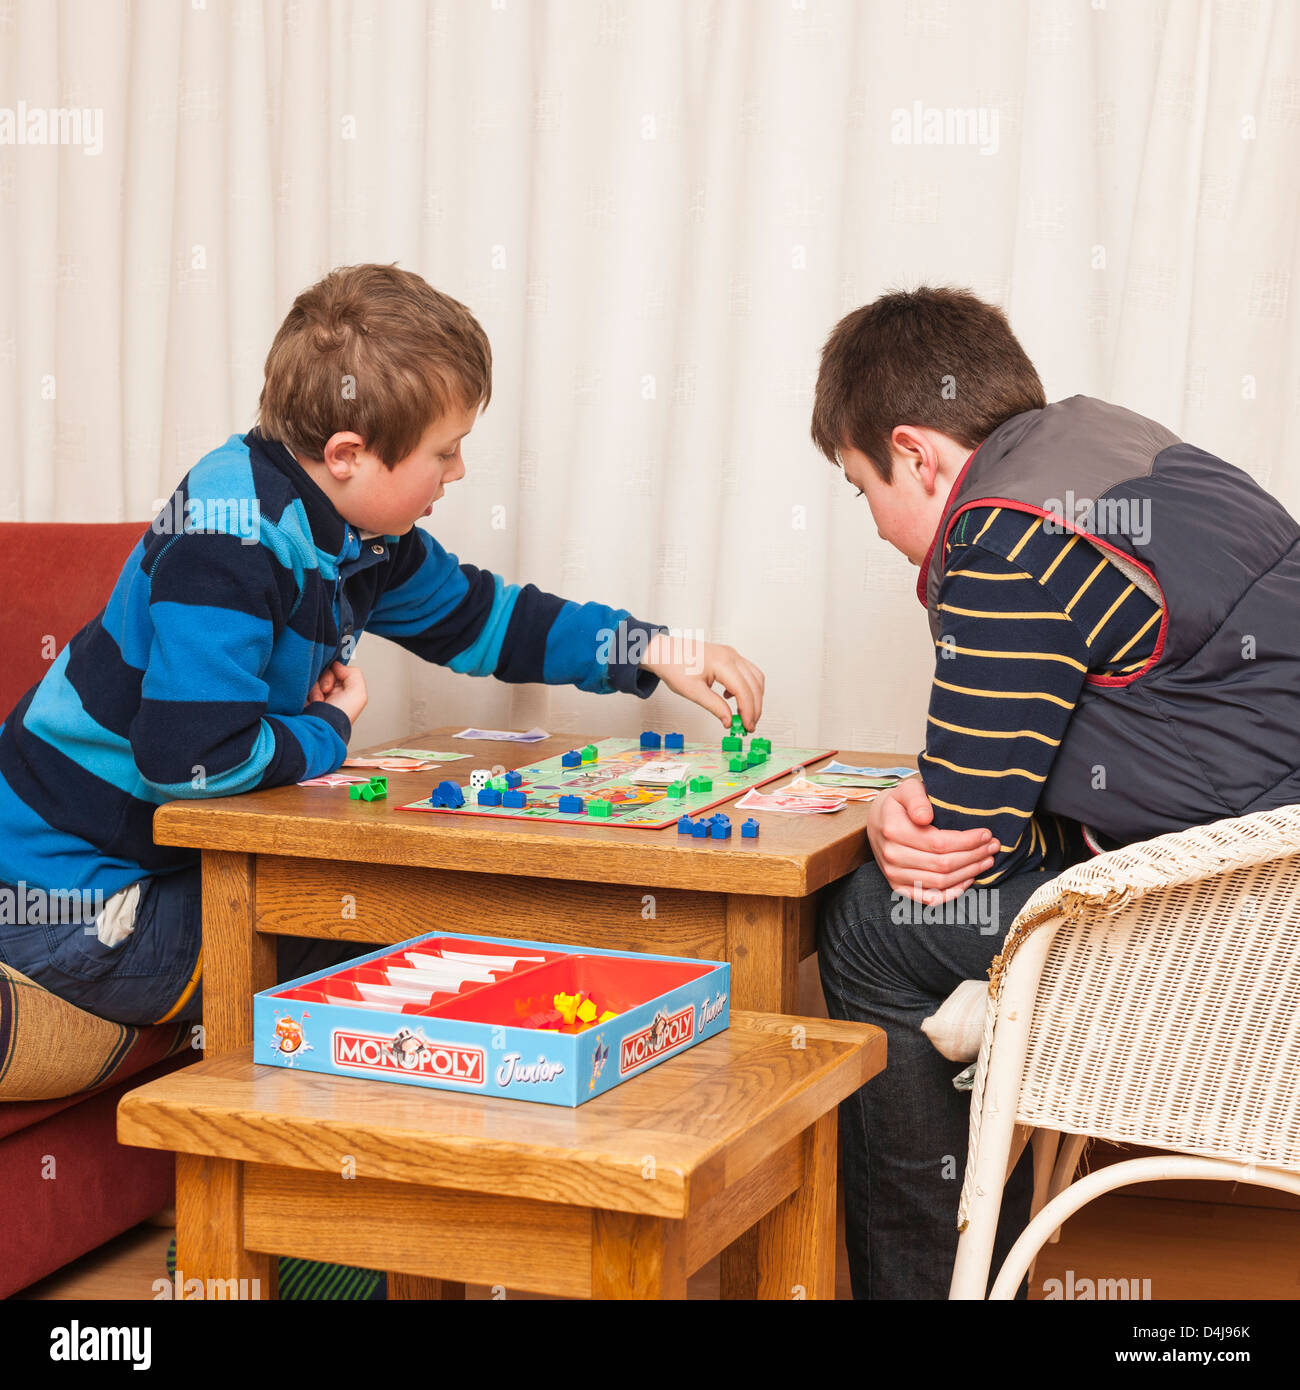 Two boys ( brothers ) playing junior monopoly board game at home - Stock Image